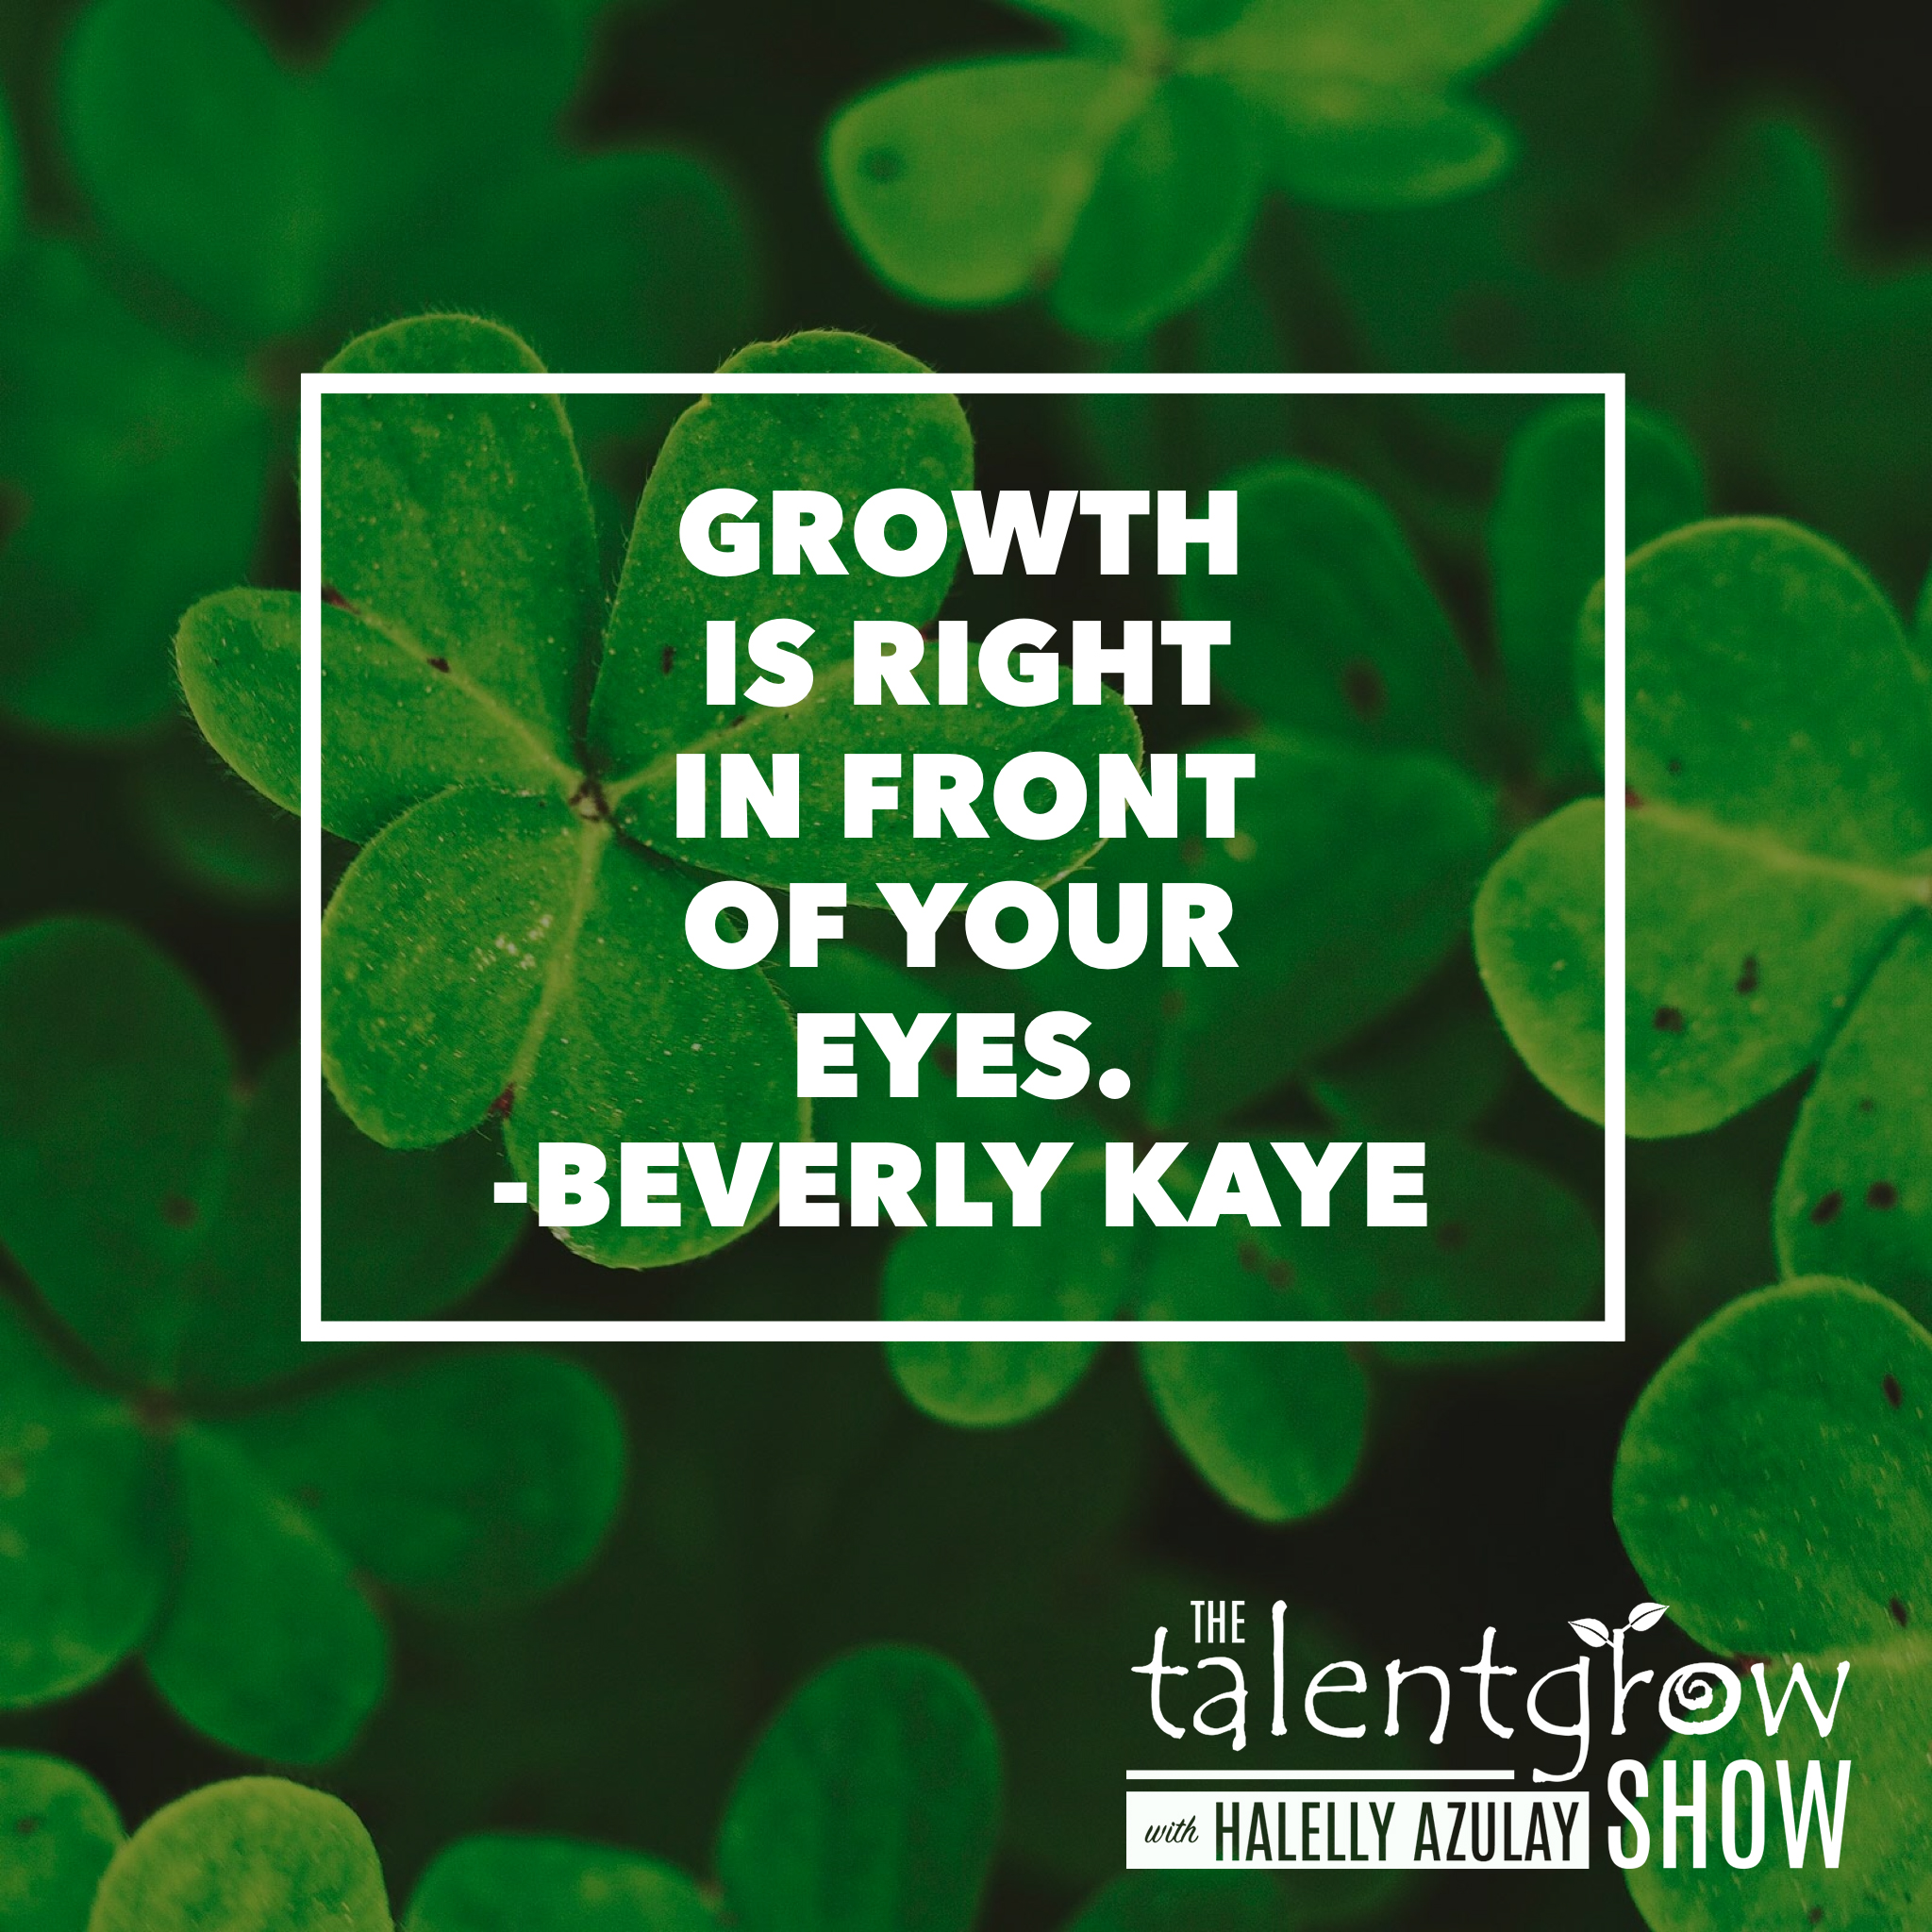 Career mobility tip from Beverly Kaye on the TalentGrow Show podcast with Halelly Azulay